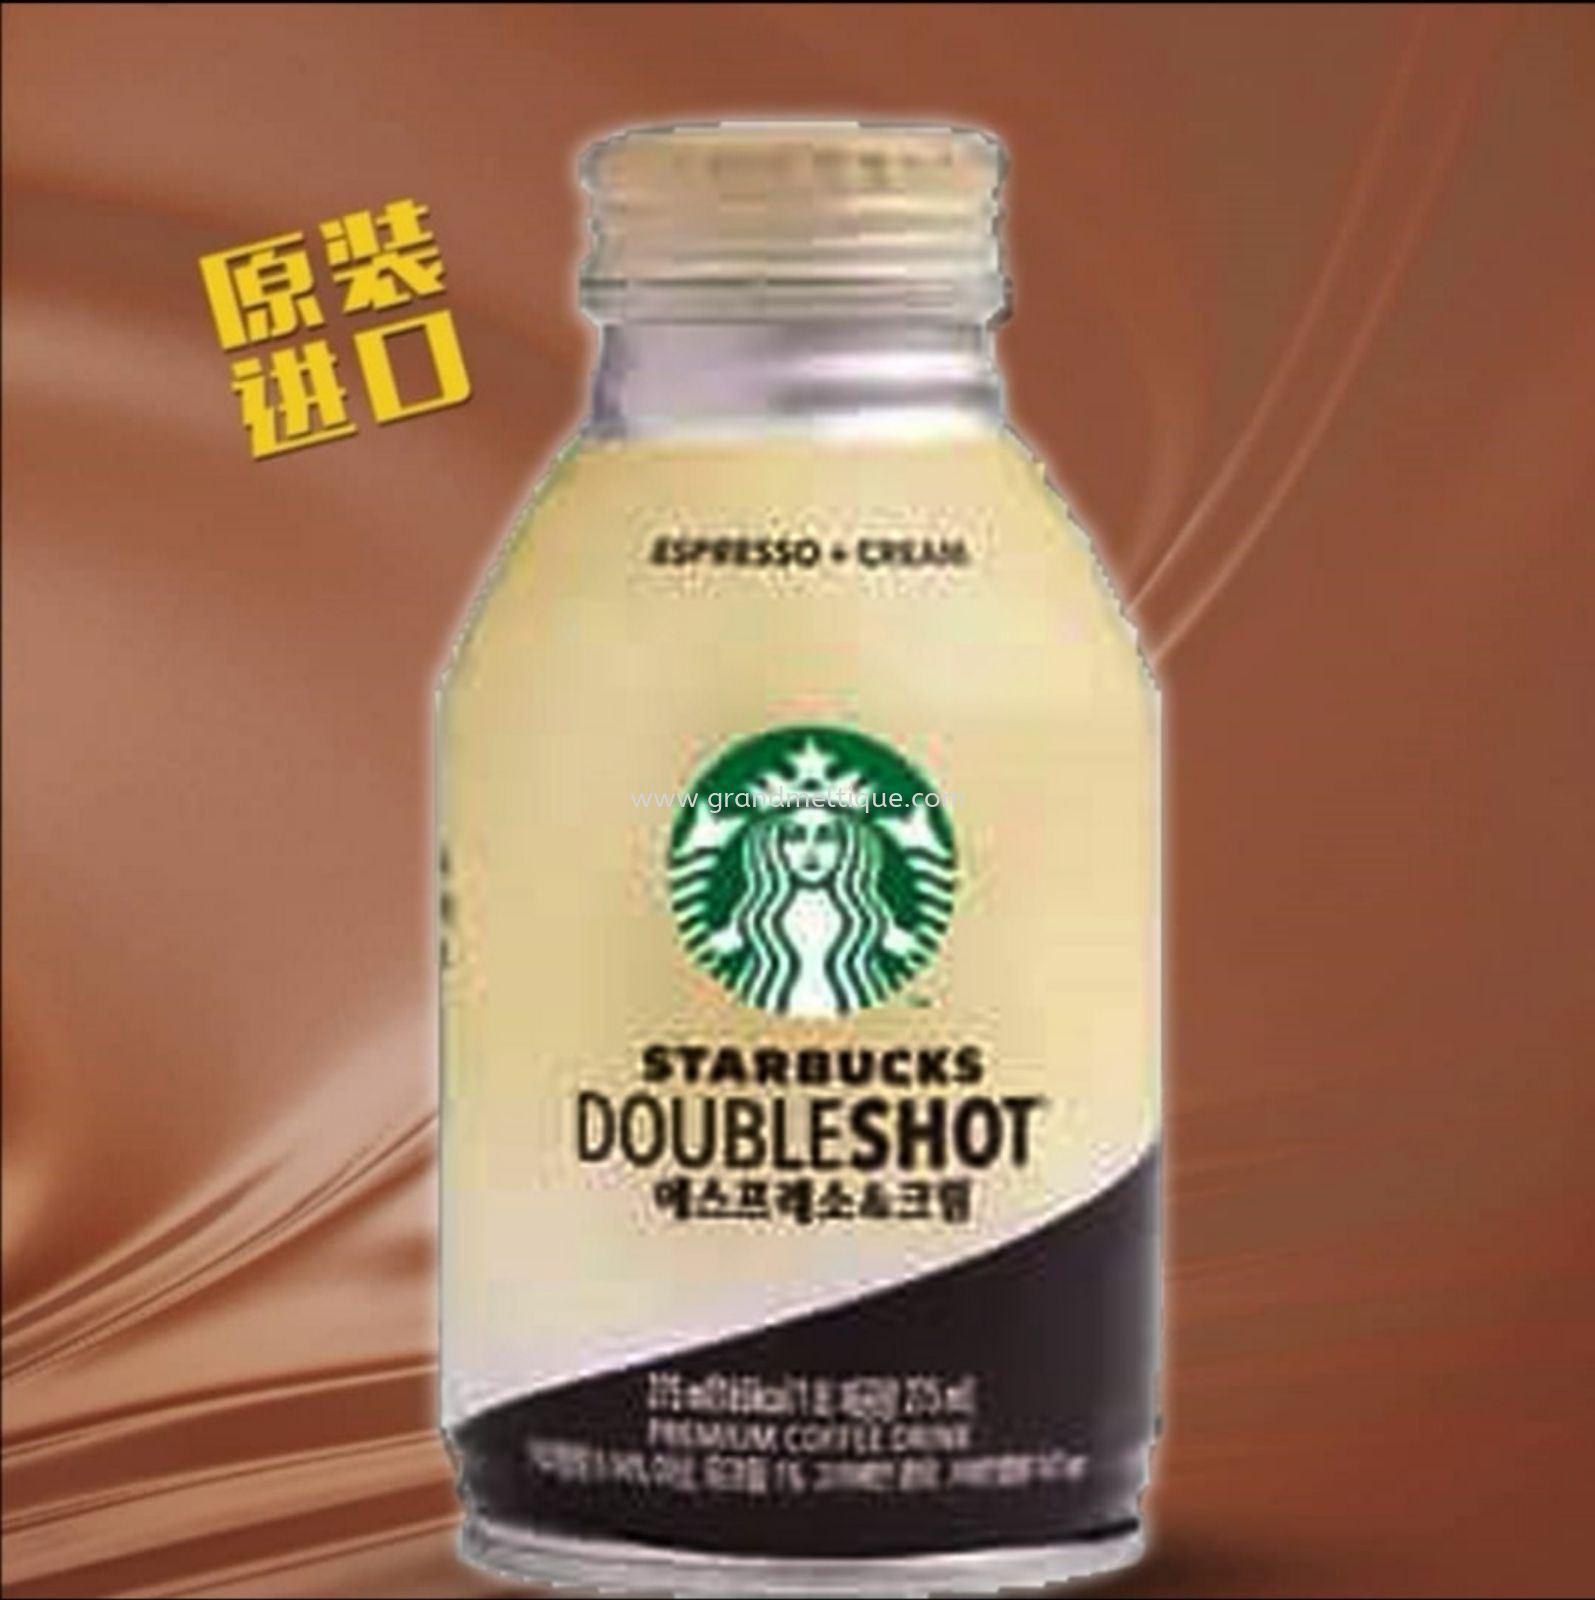 STARBUCKS DOUBLESHOOT ESPRESSO +CREAM